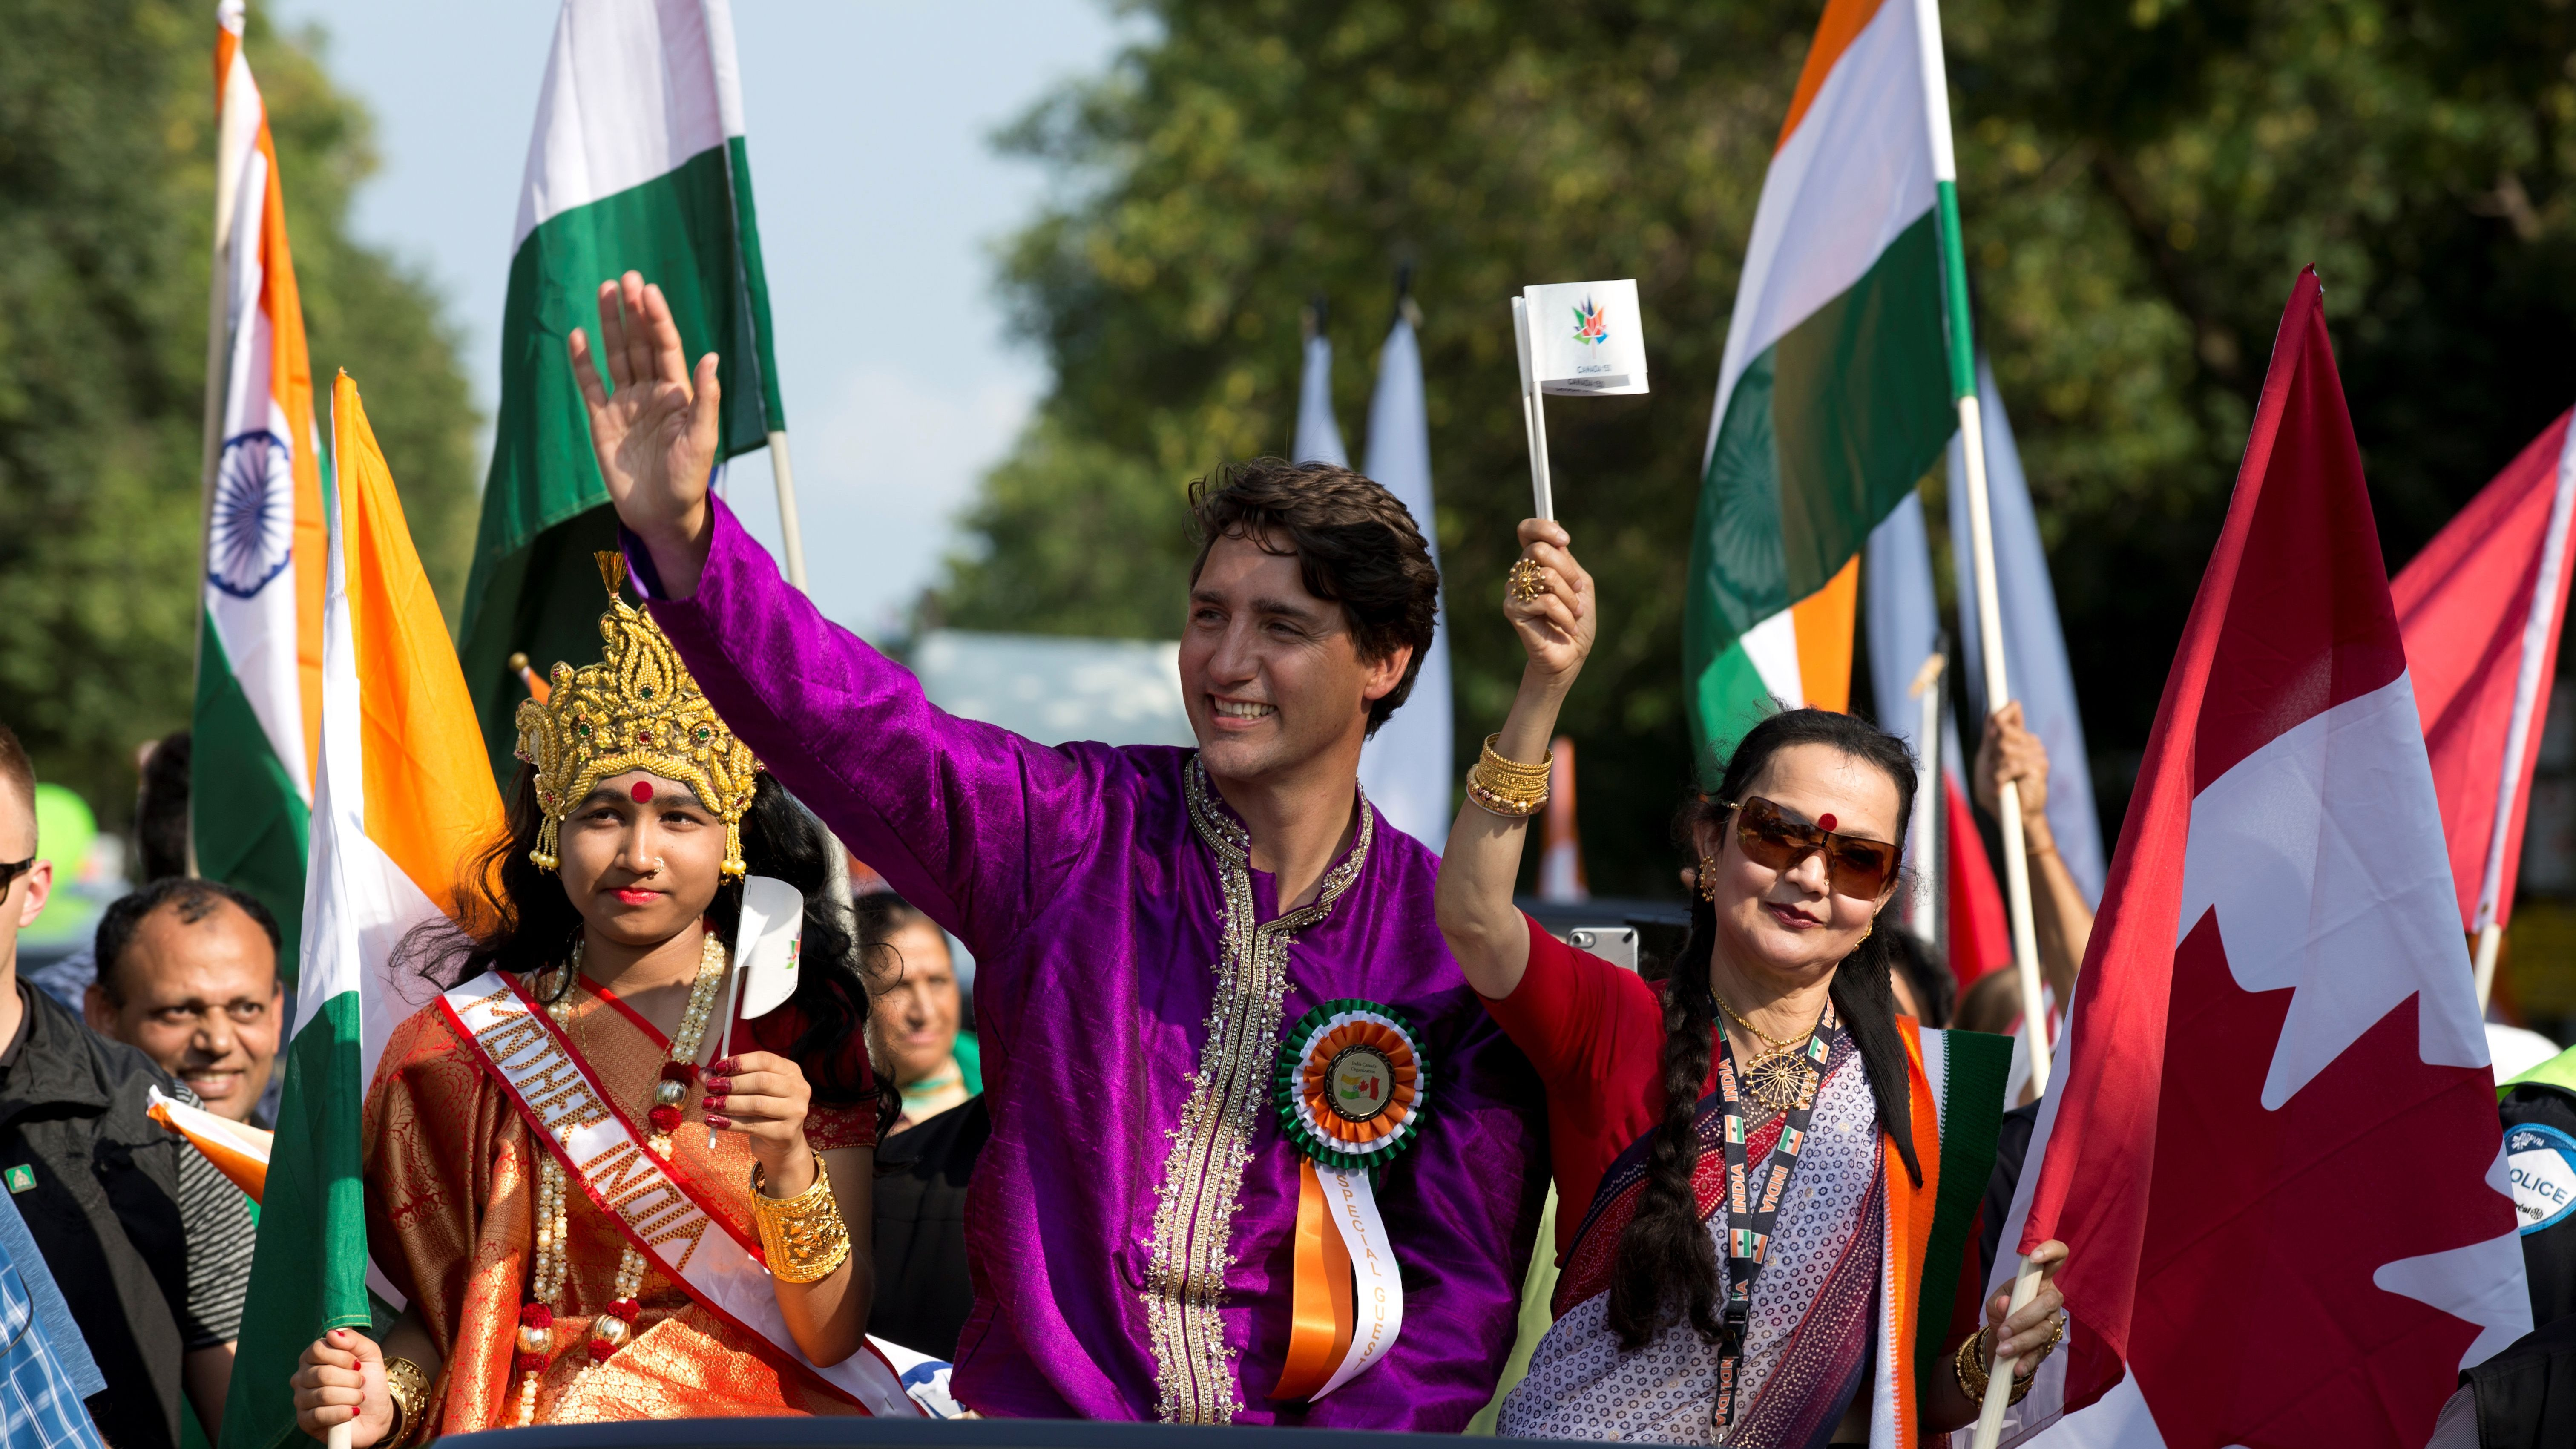 Canada's Prime Minister Justin Trudeau participates in the India Day Parade in Montreal